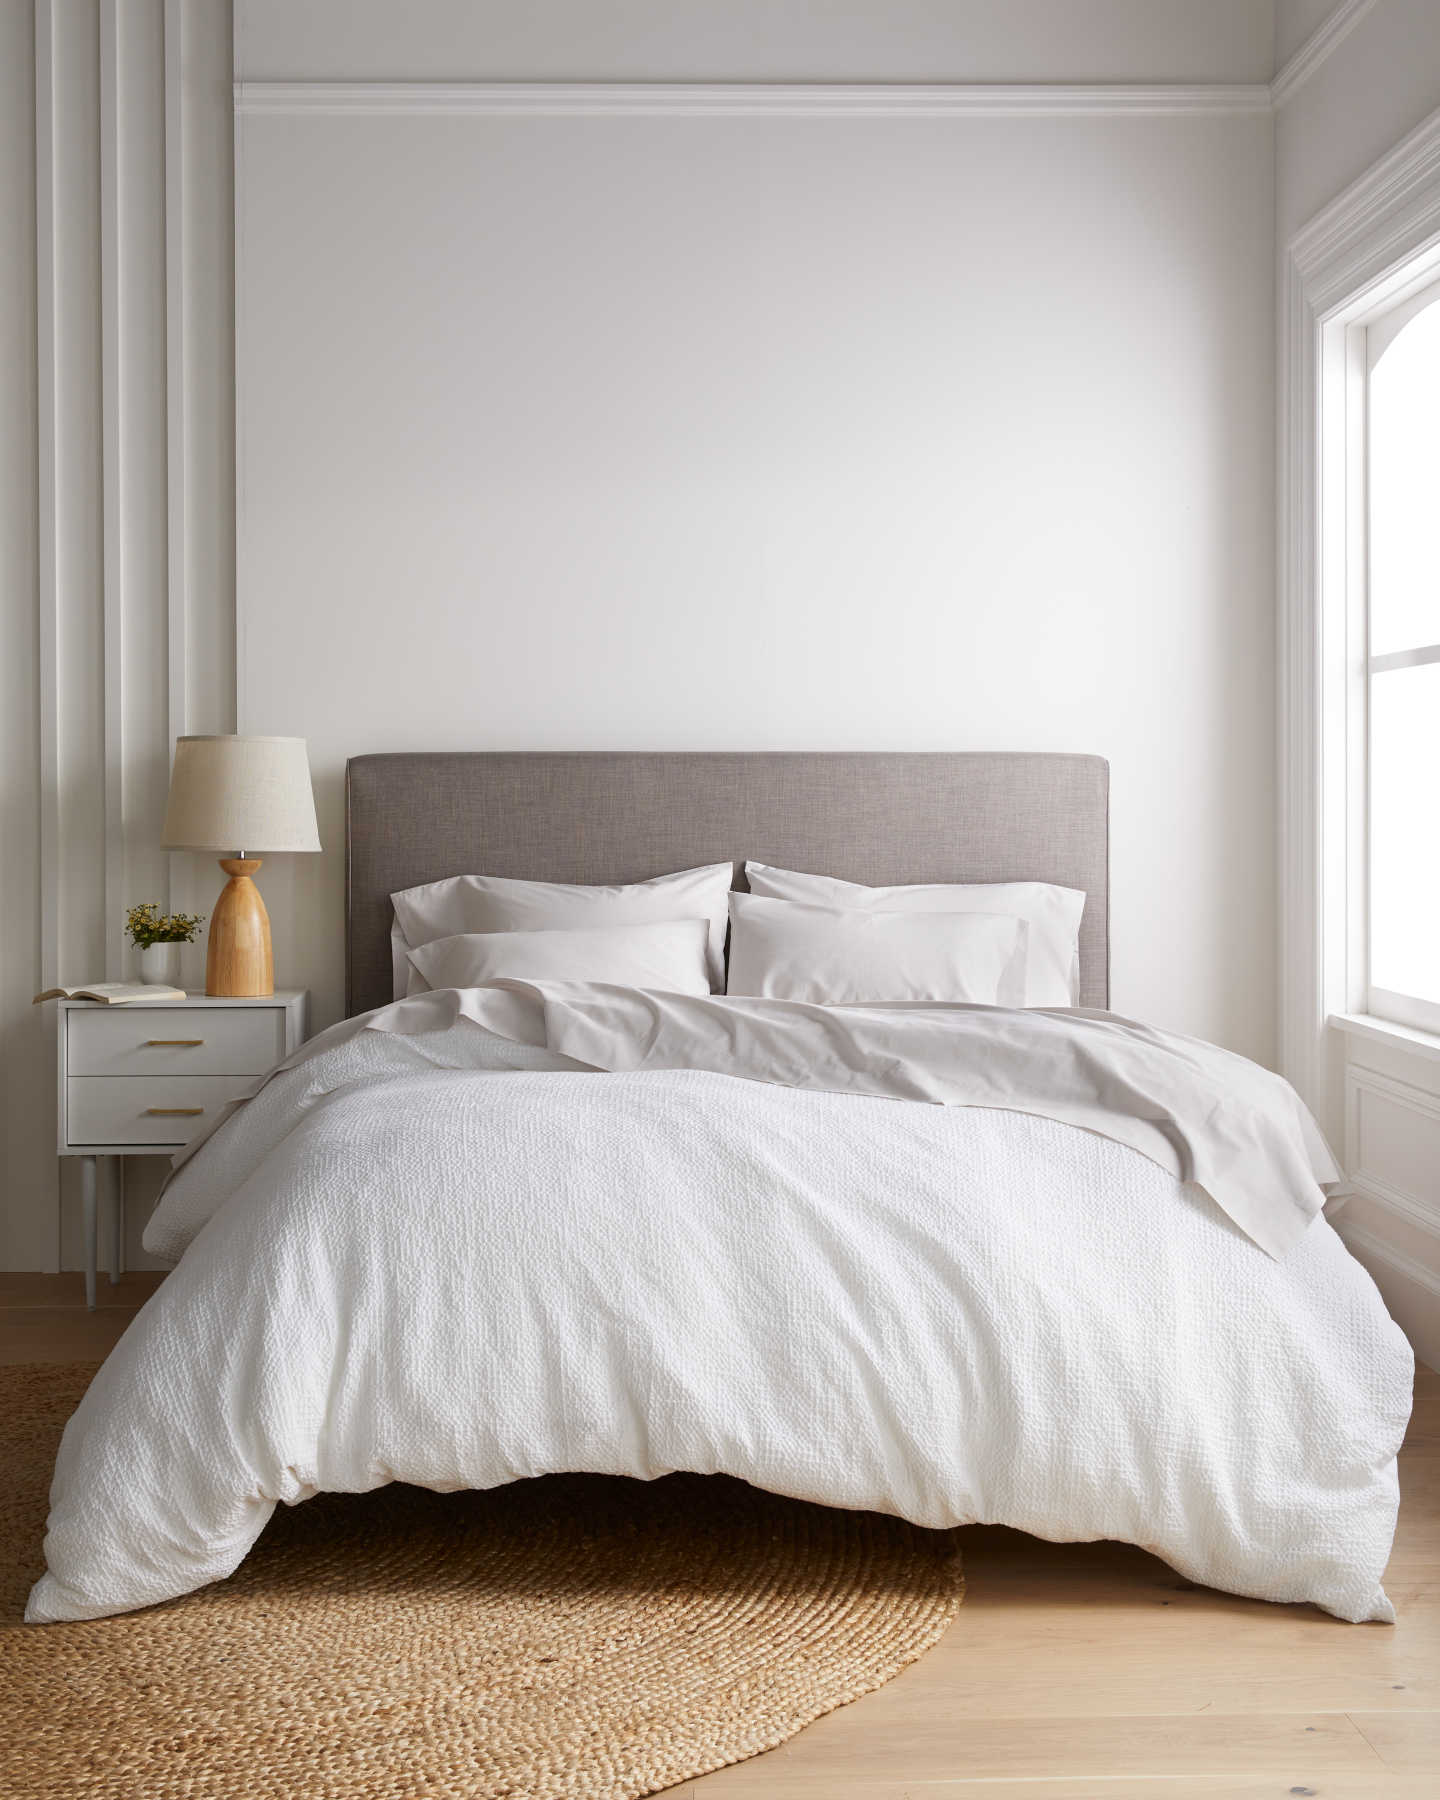 Pair With - Organic Luxe Waffle Duvet Cover - White